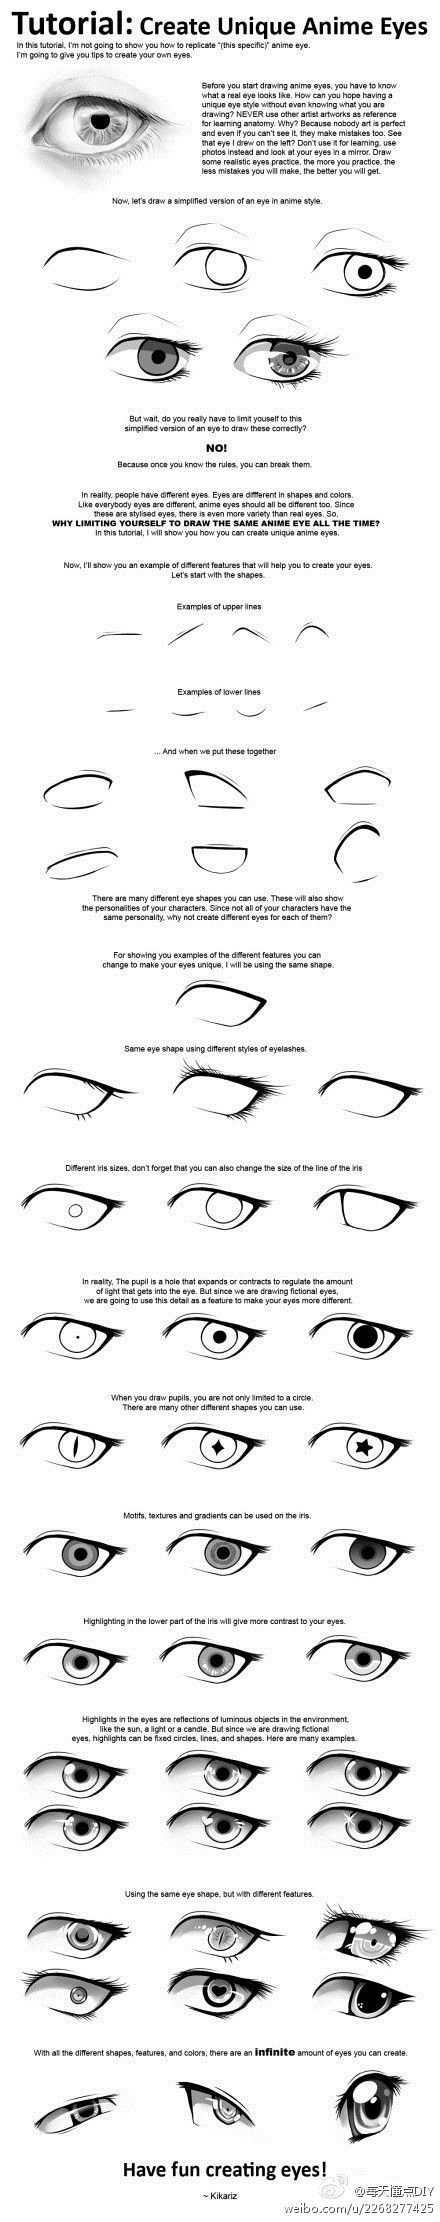 Find This Pin And More On Anime: Eyes How To Draw